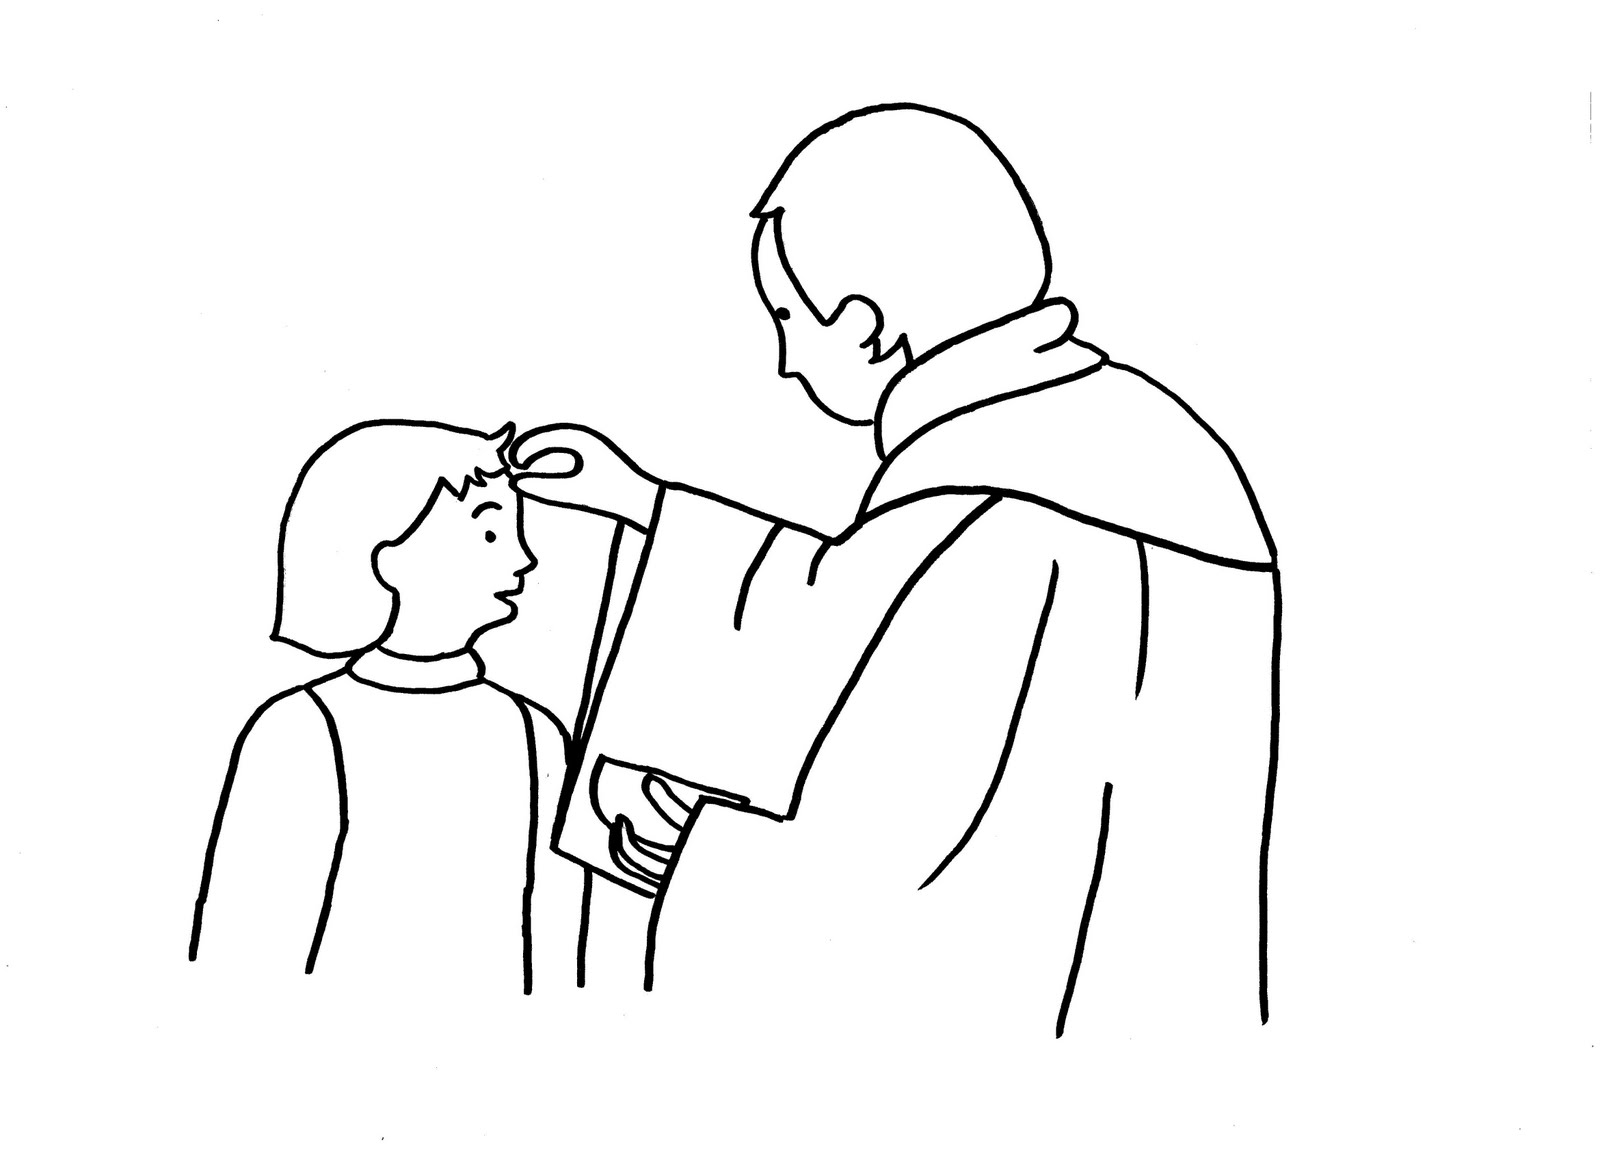 ash wednesday coloring pages - photo#15